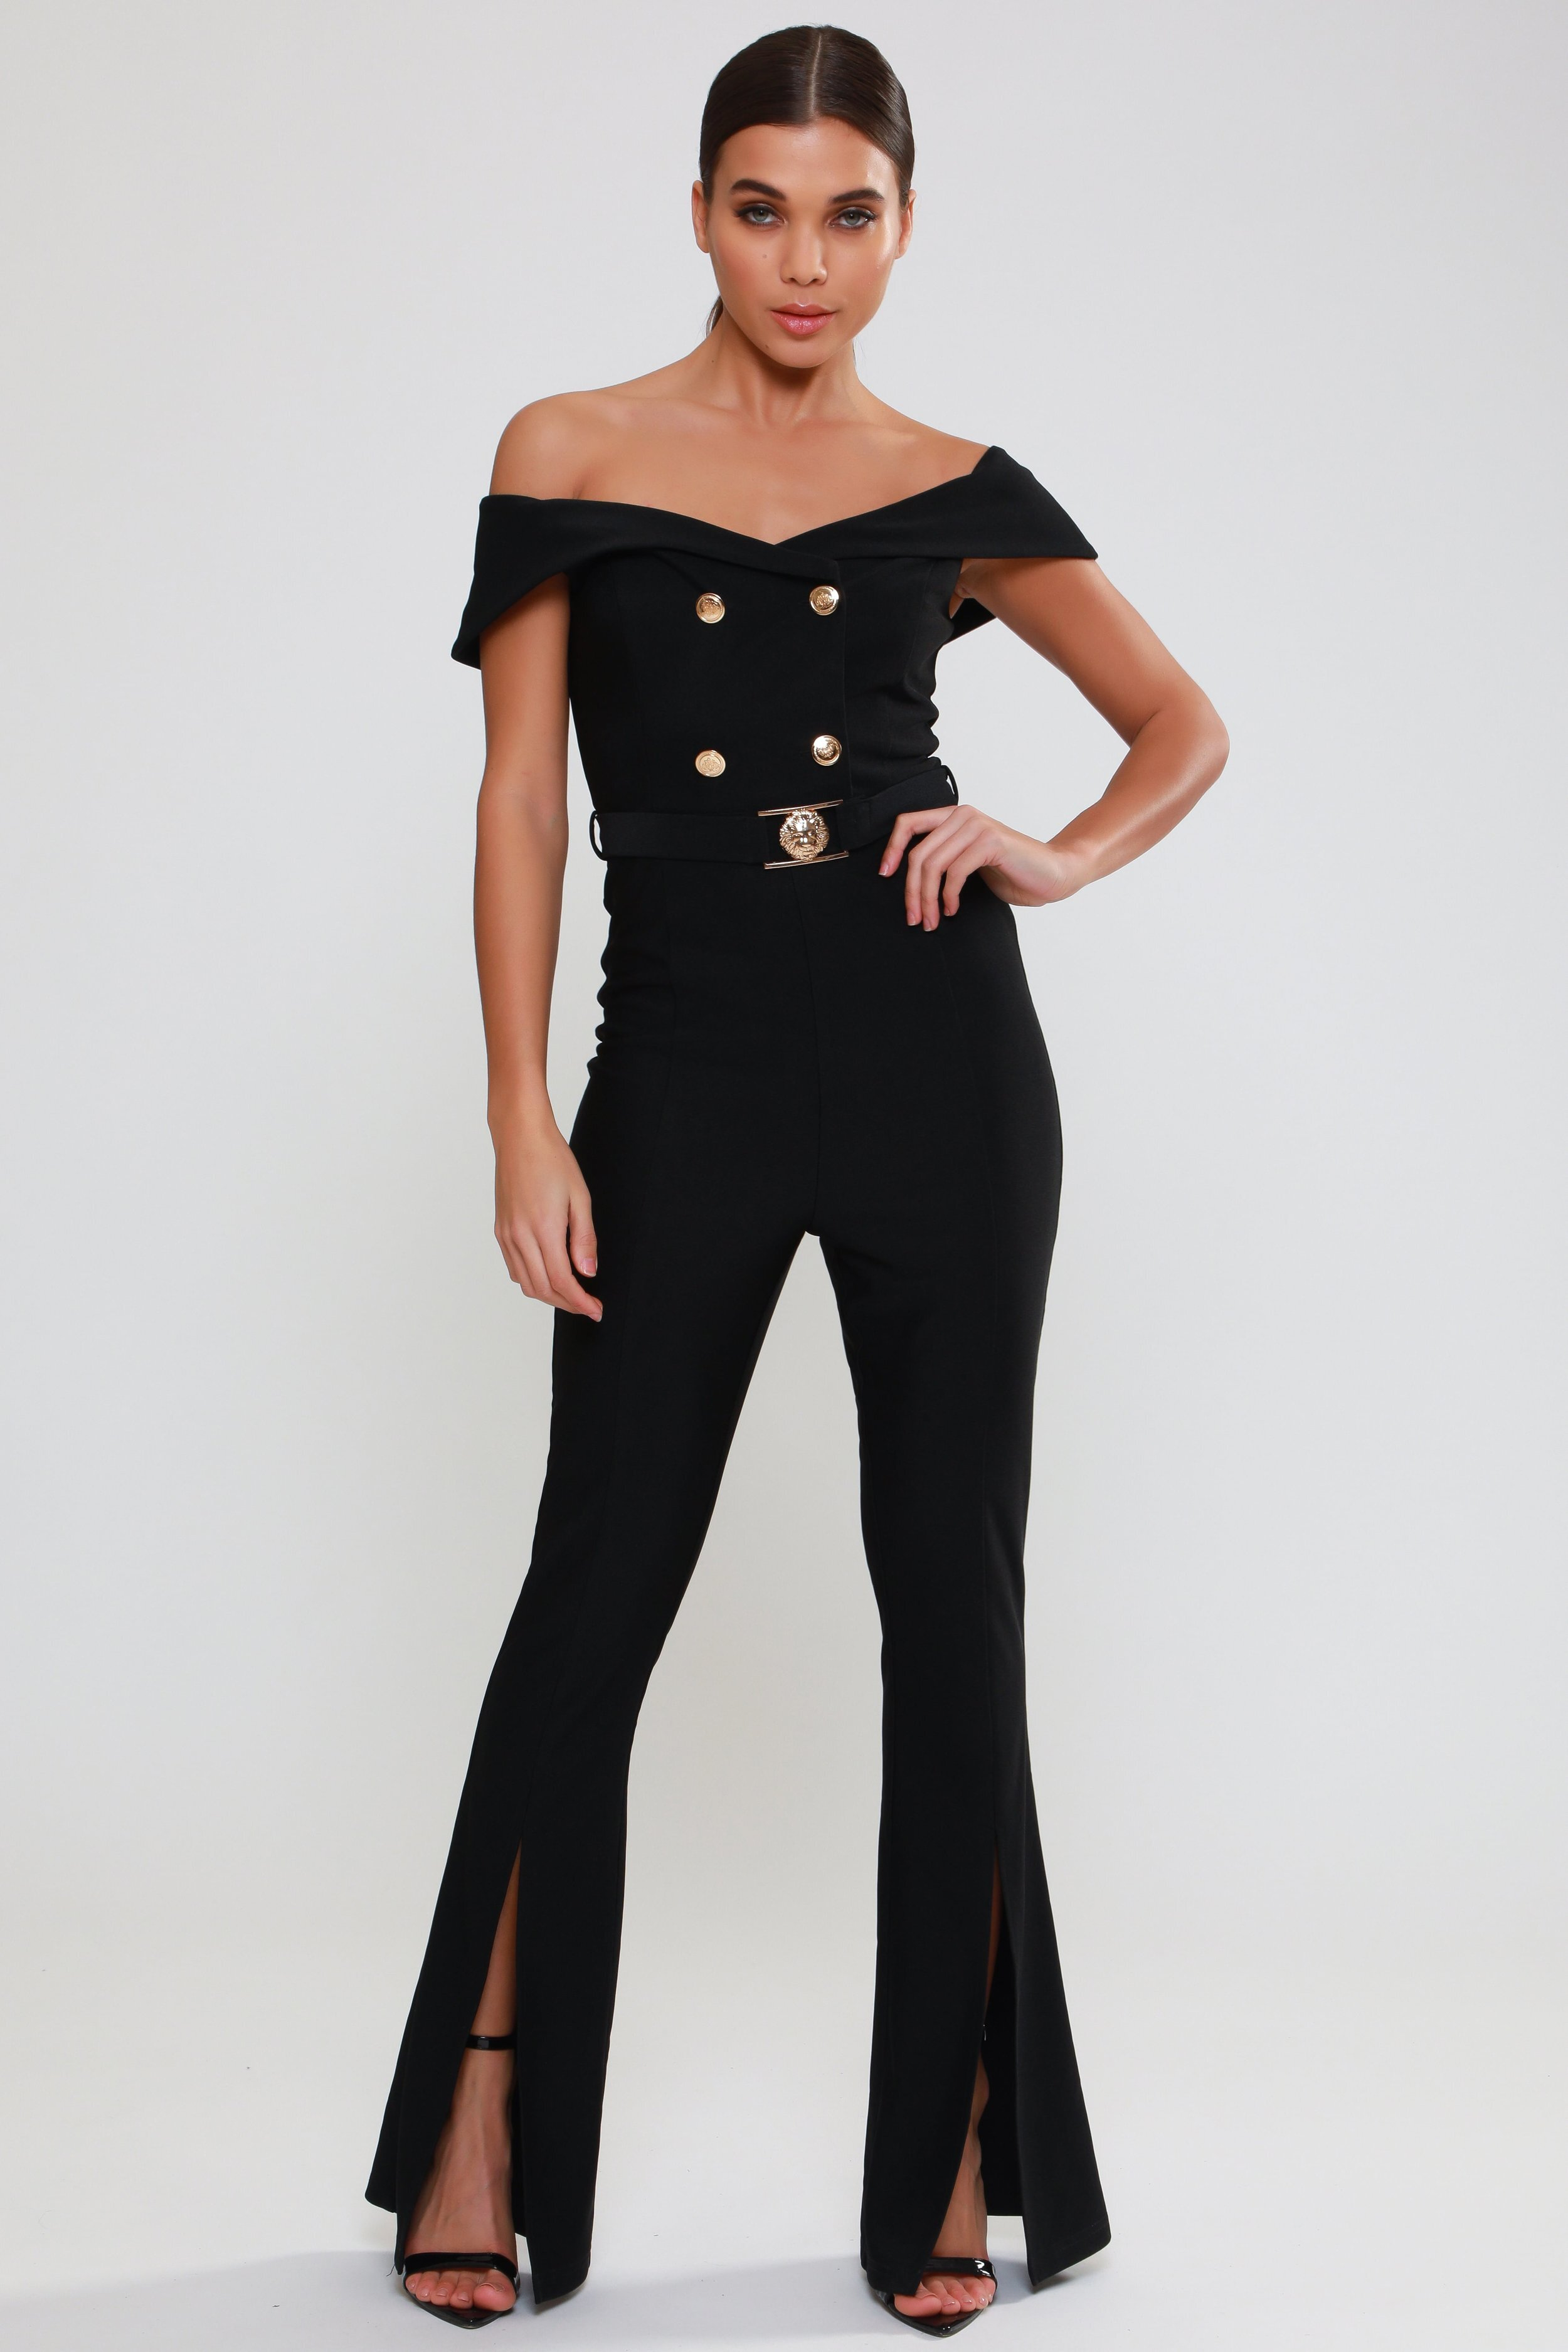 Bardot Button Detail  Jumpsuit   £69.00